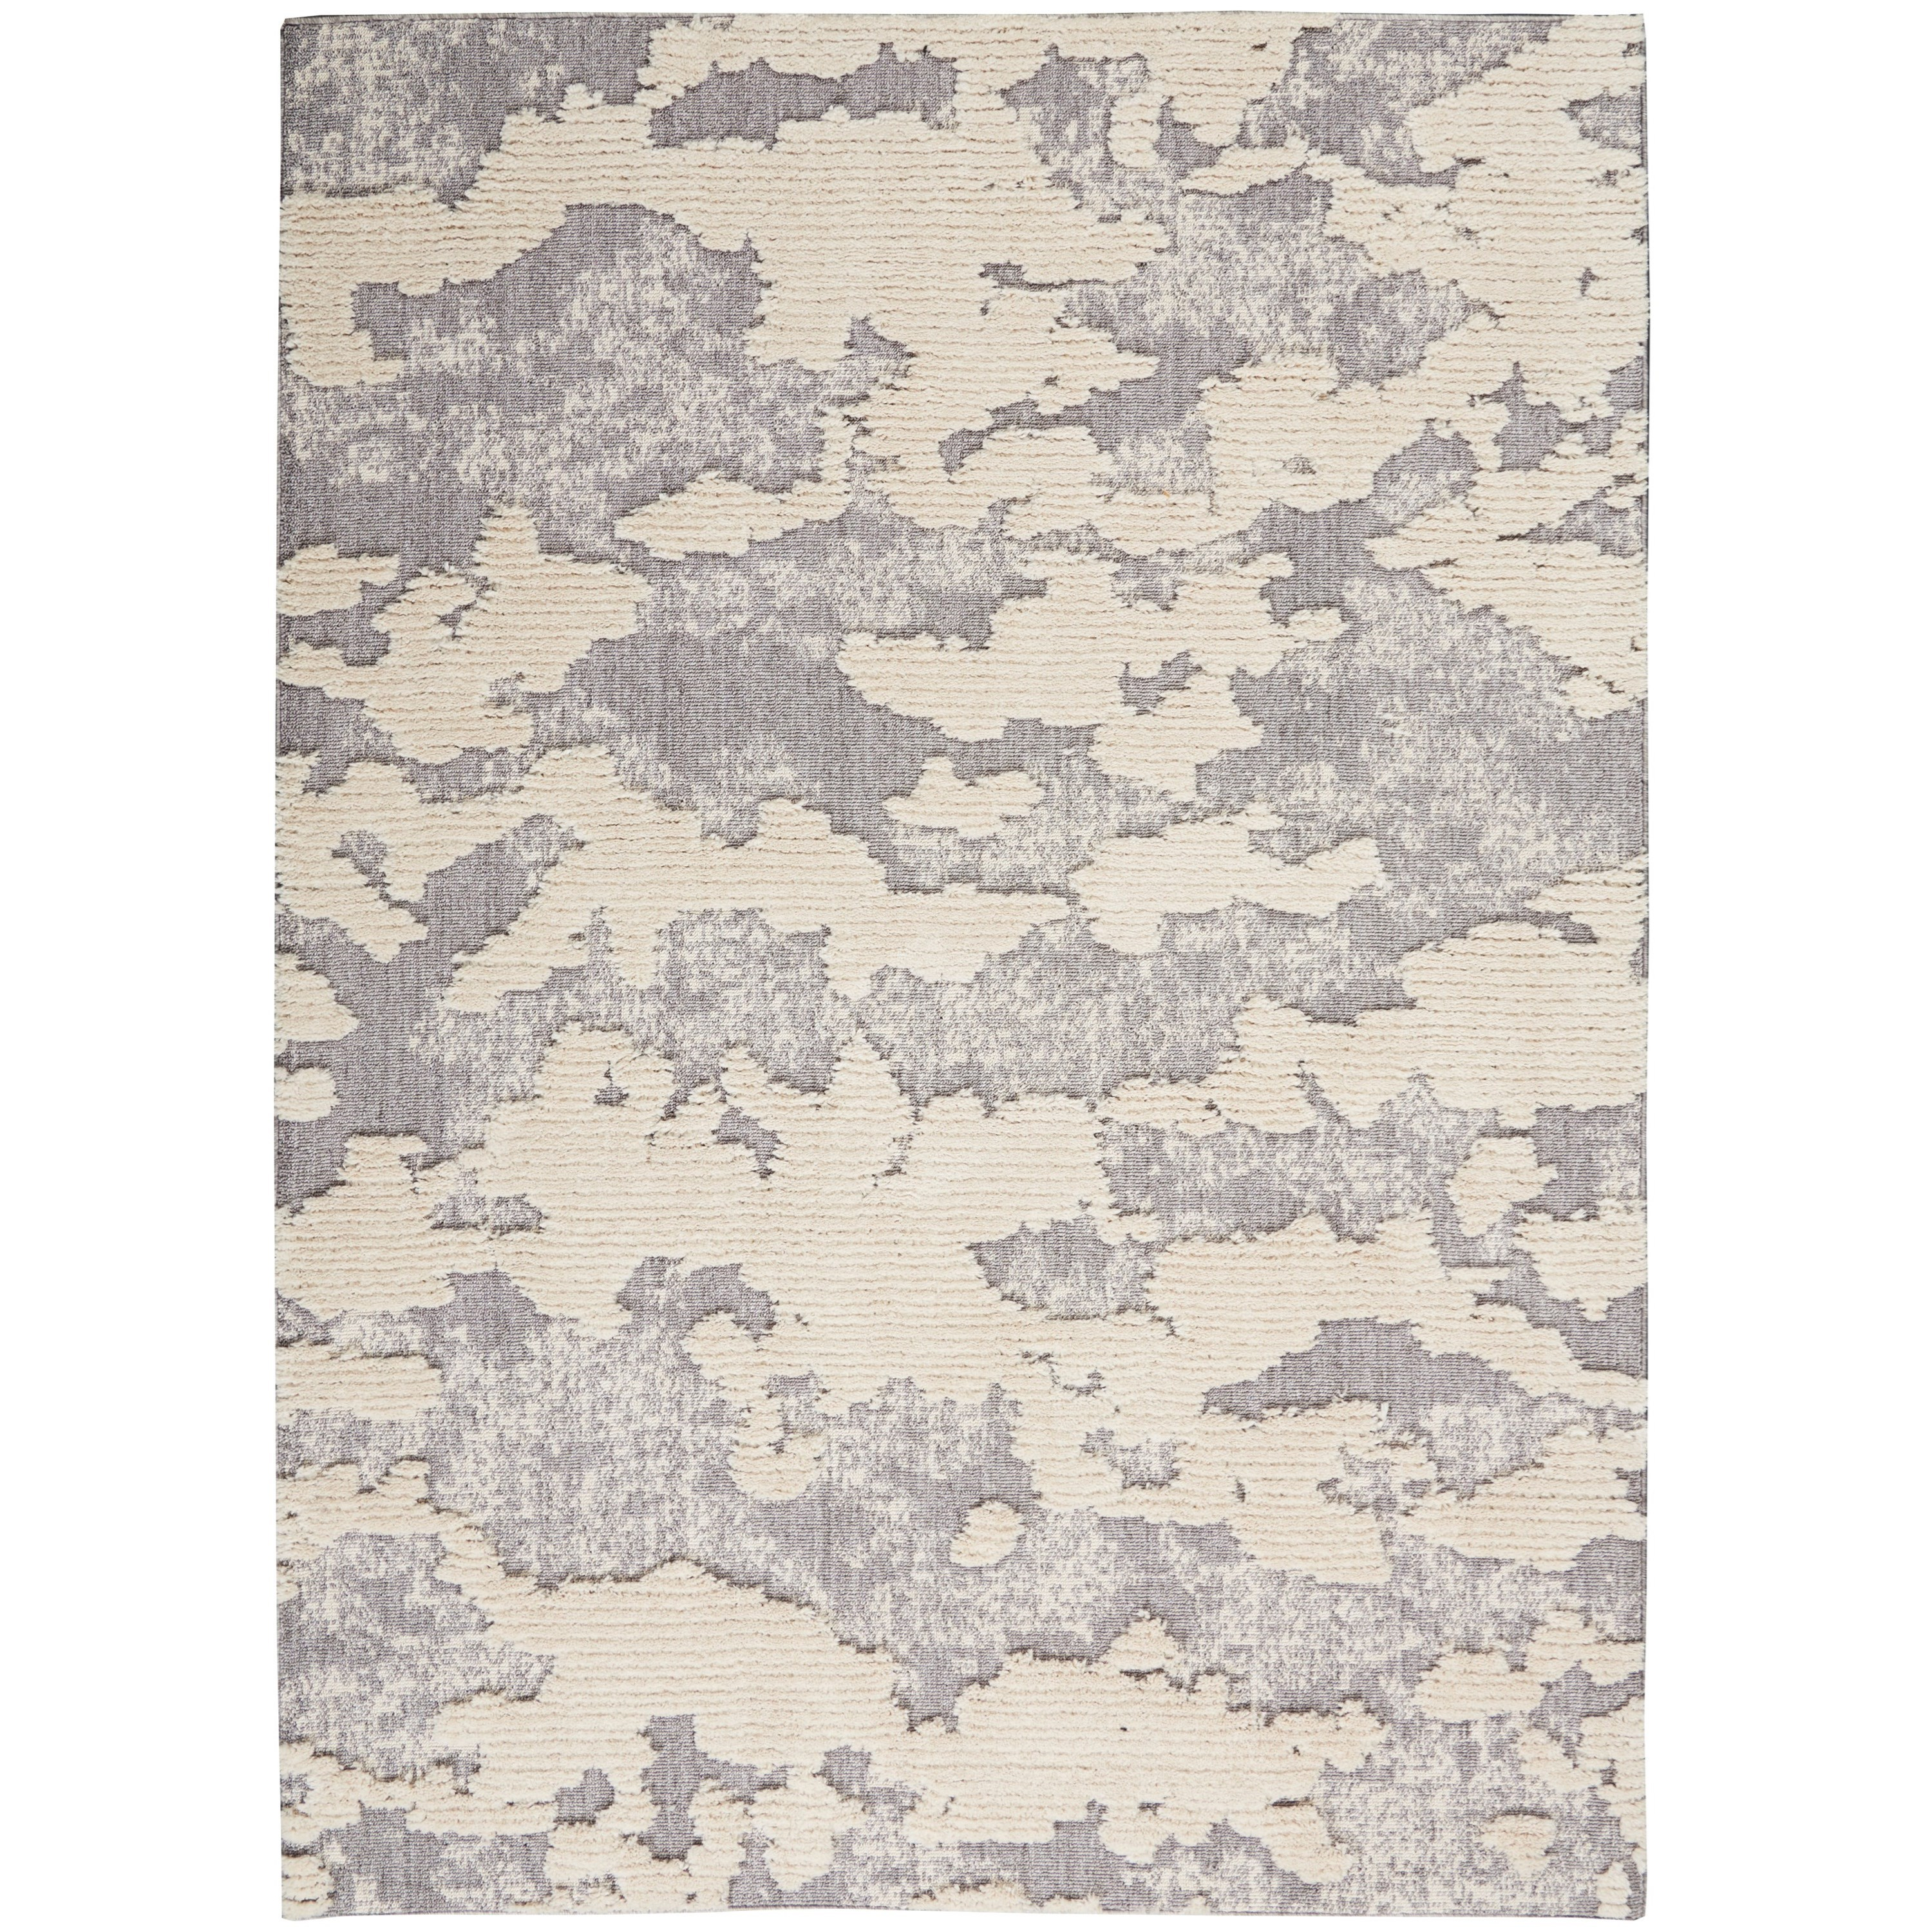 Zermatt 8' x 10' Ivory Neutral  Area Rug by Nourison at Home Collections Furniture